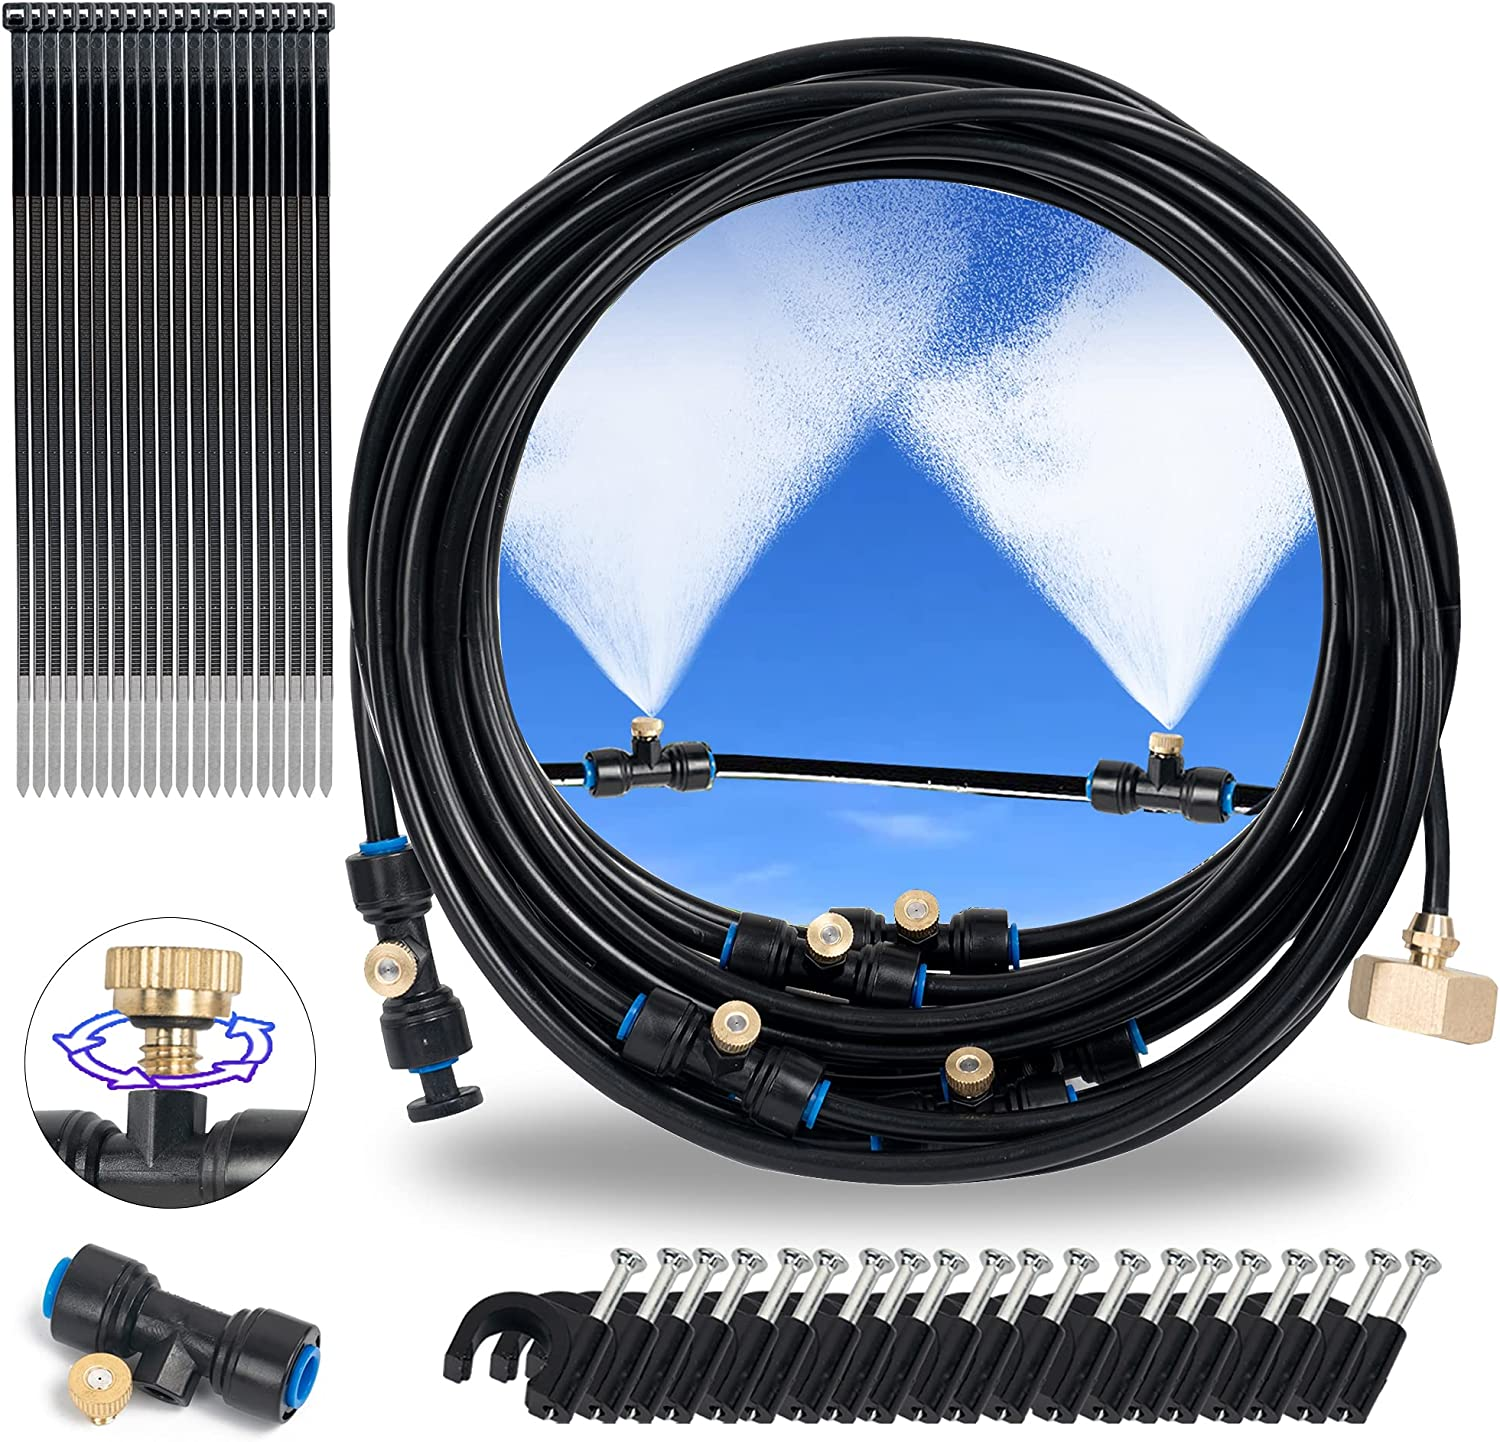 Hourleey 26 Ft Misting Cooling System, Outdoor Mister System with 26 Feet Misting Tube, 9 Brass Mist Nozzles and 3/4